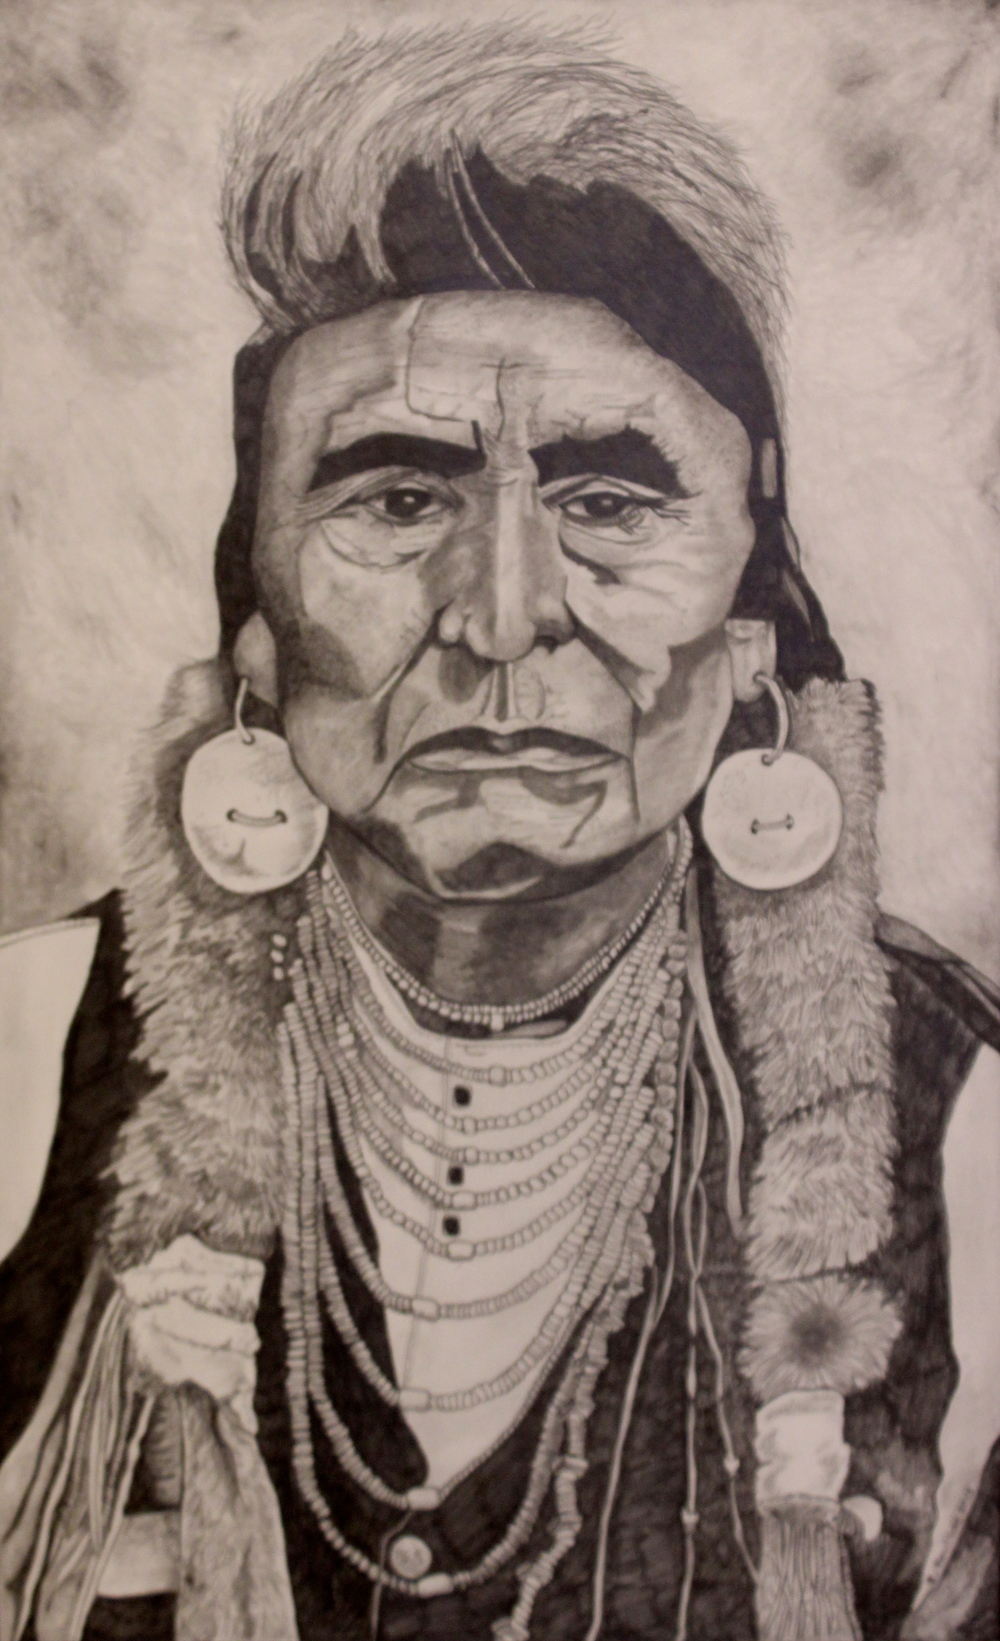 Chief Joseph by K. Houlihan